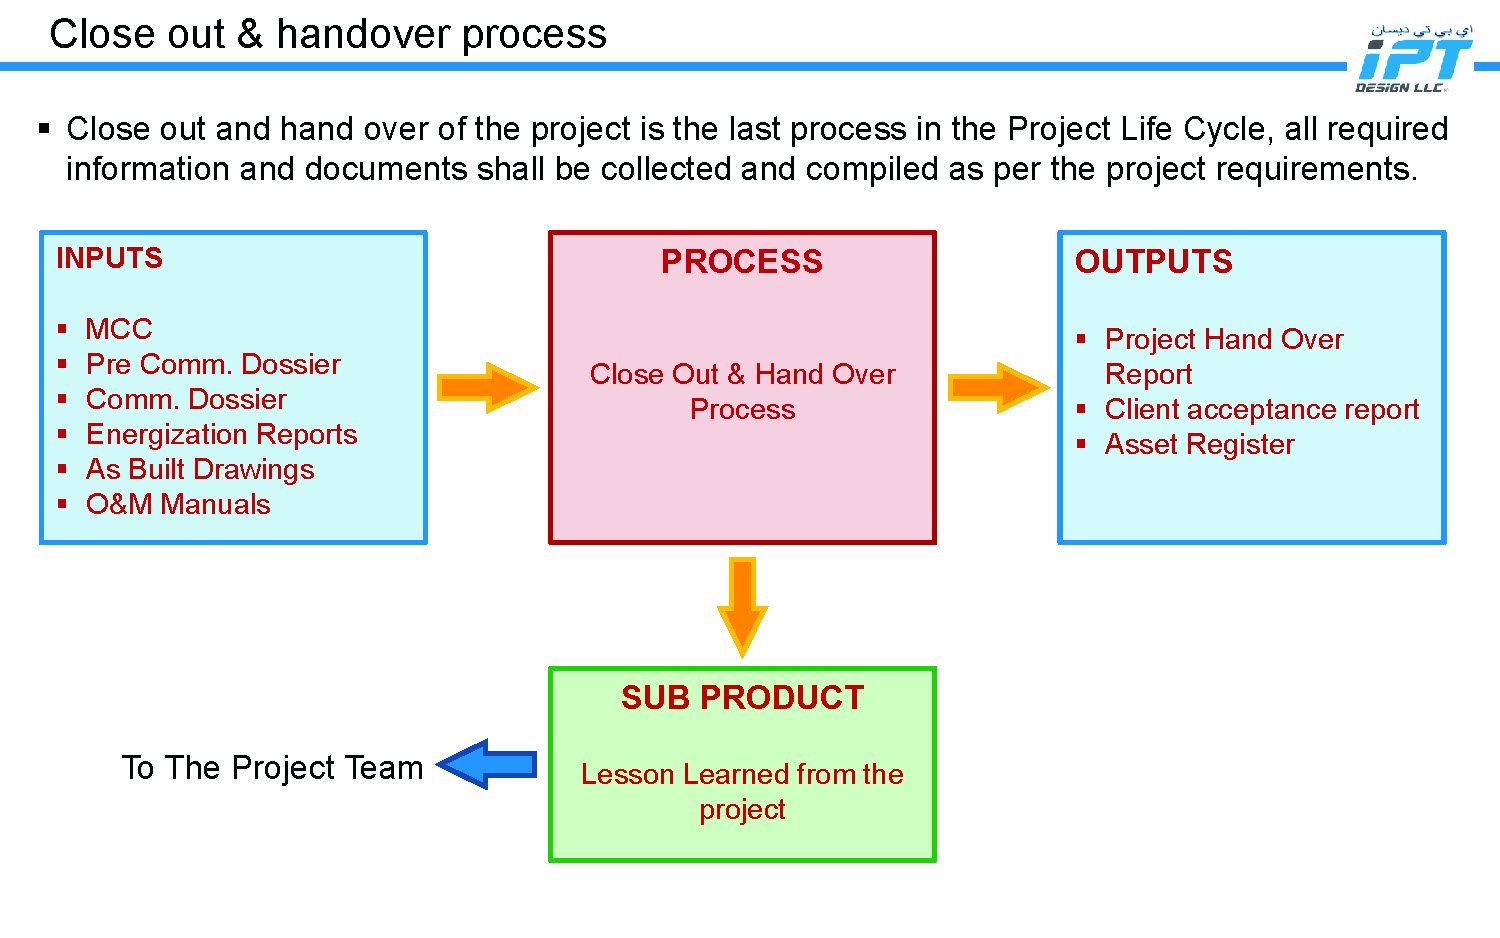 IPT Design LLC - Commissioning Management Process_Page_11.jpg